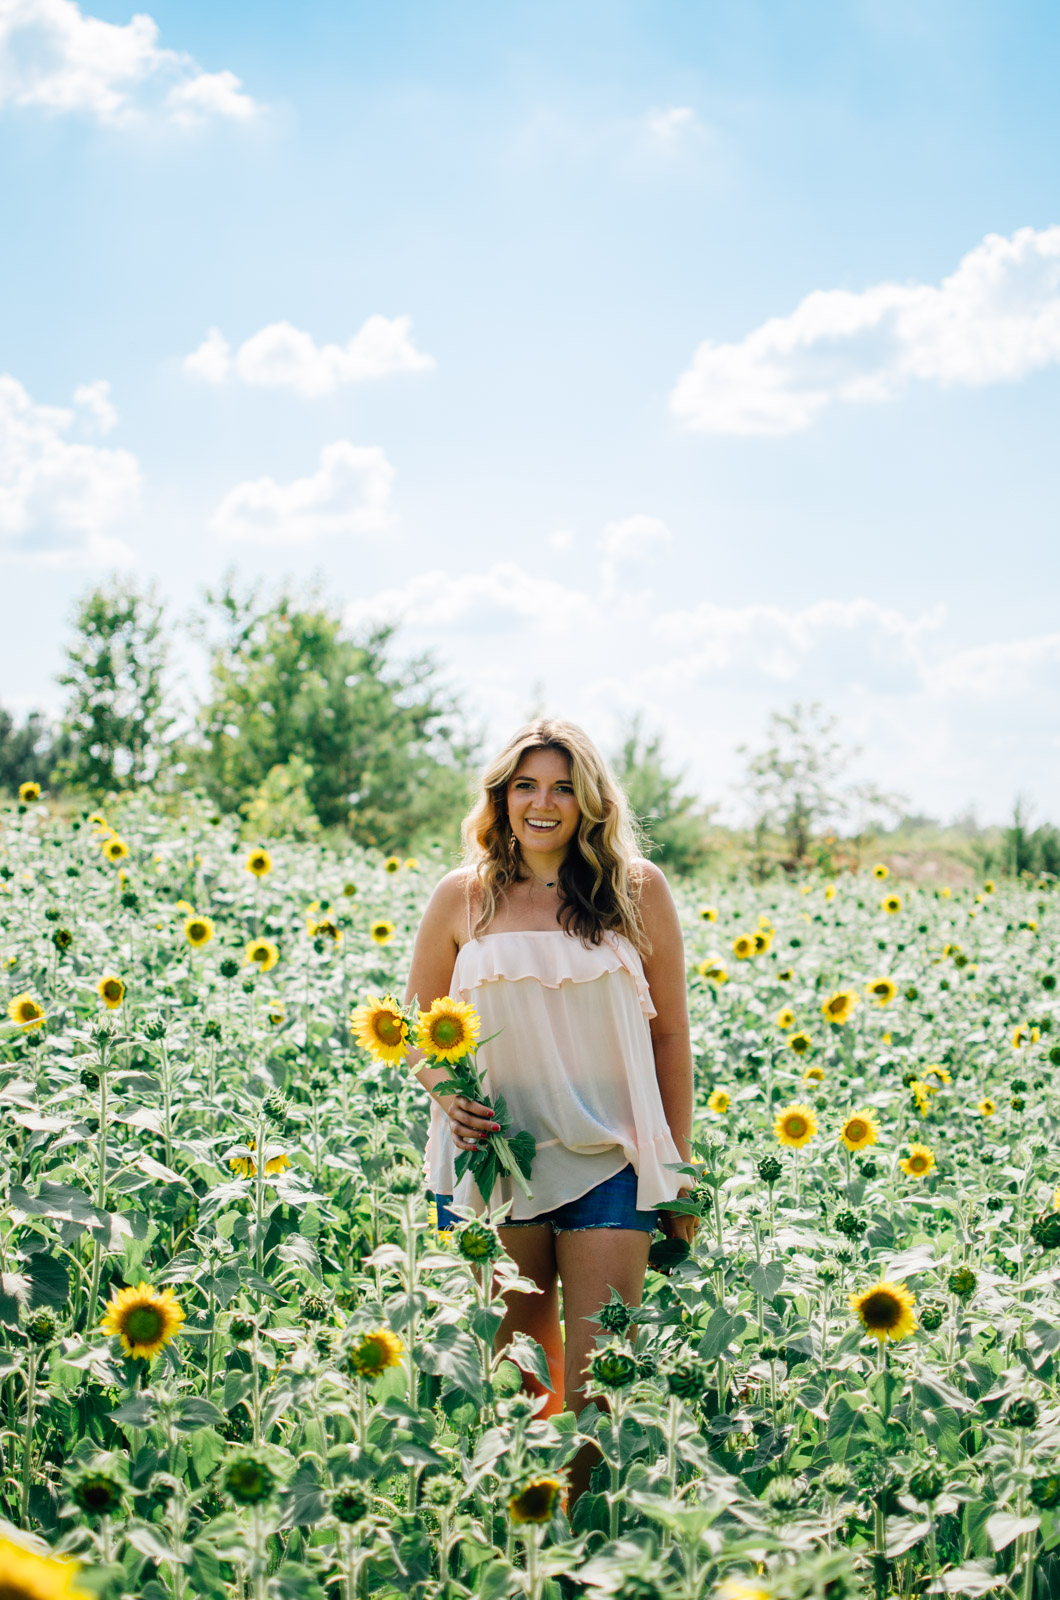 richmond virginia sunflower picking | For more cute summer outfits, head to bylaurenm.com